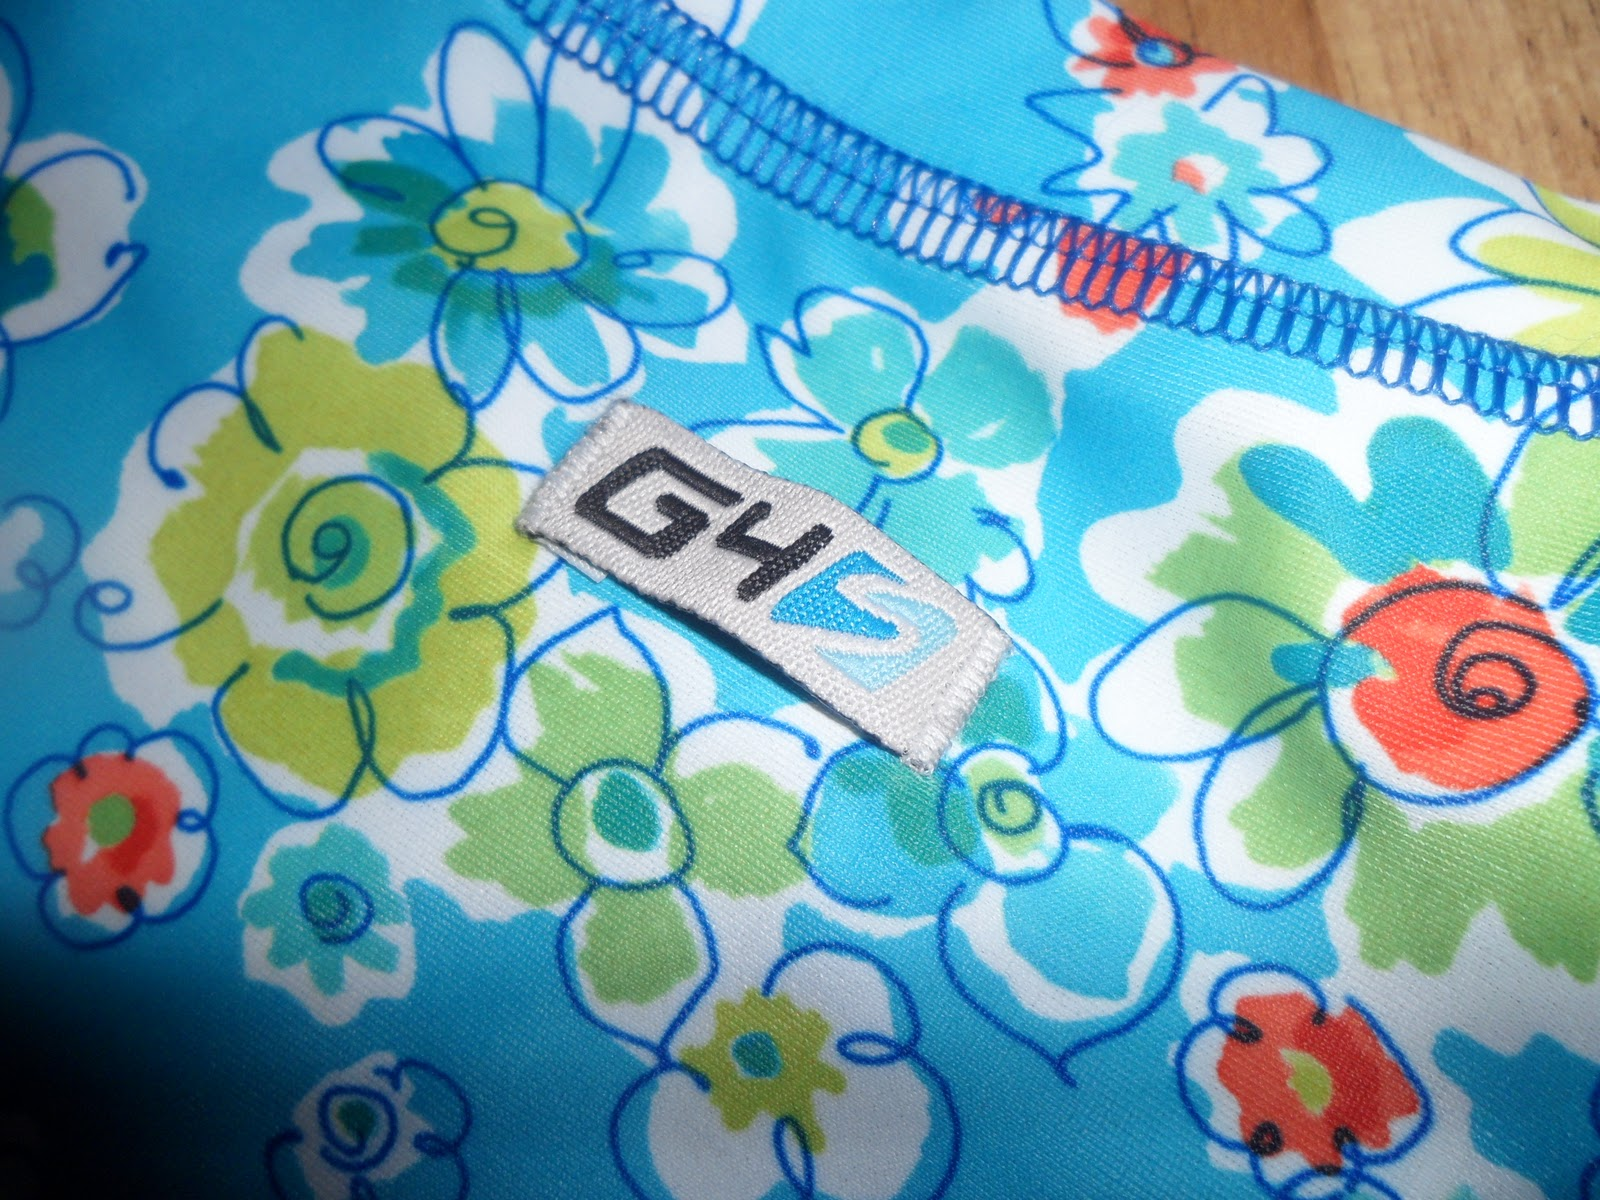 DragonFly Sweetnest: Girls 4 Sport Review/Giveaway